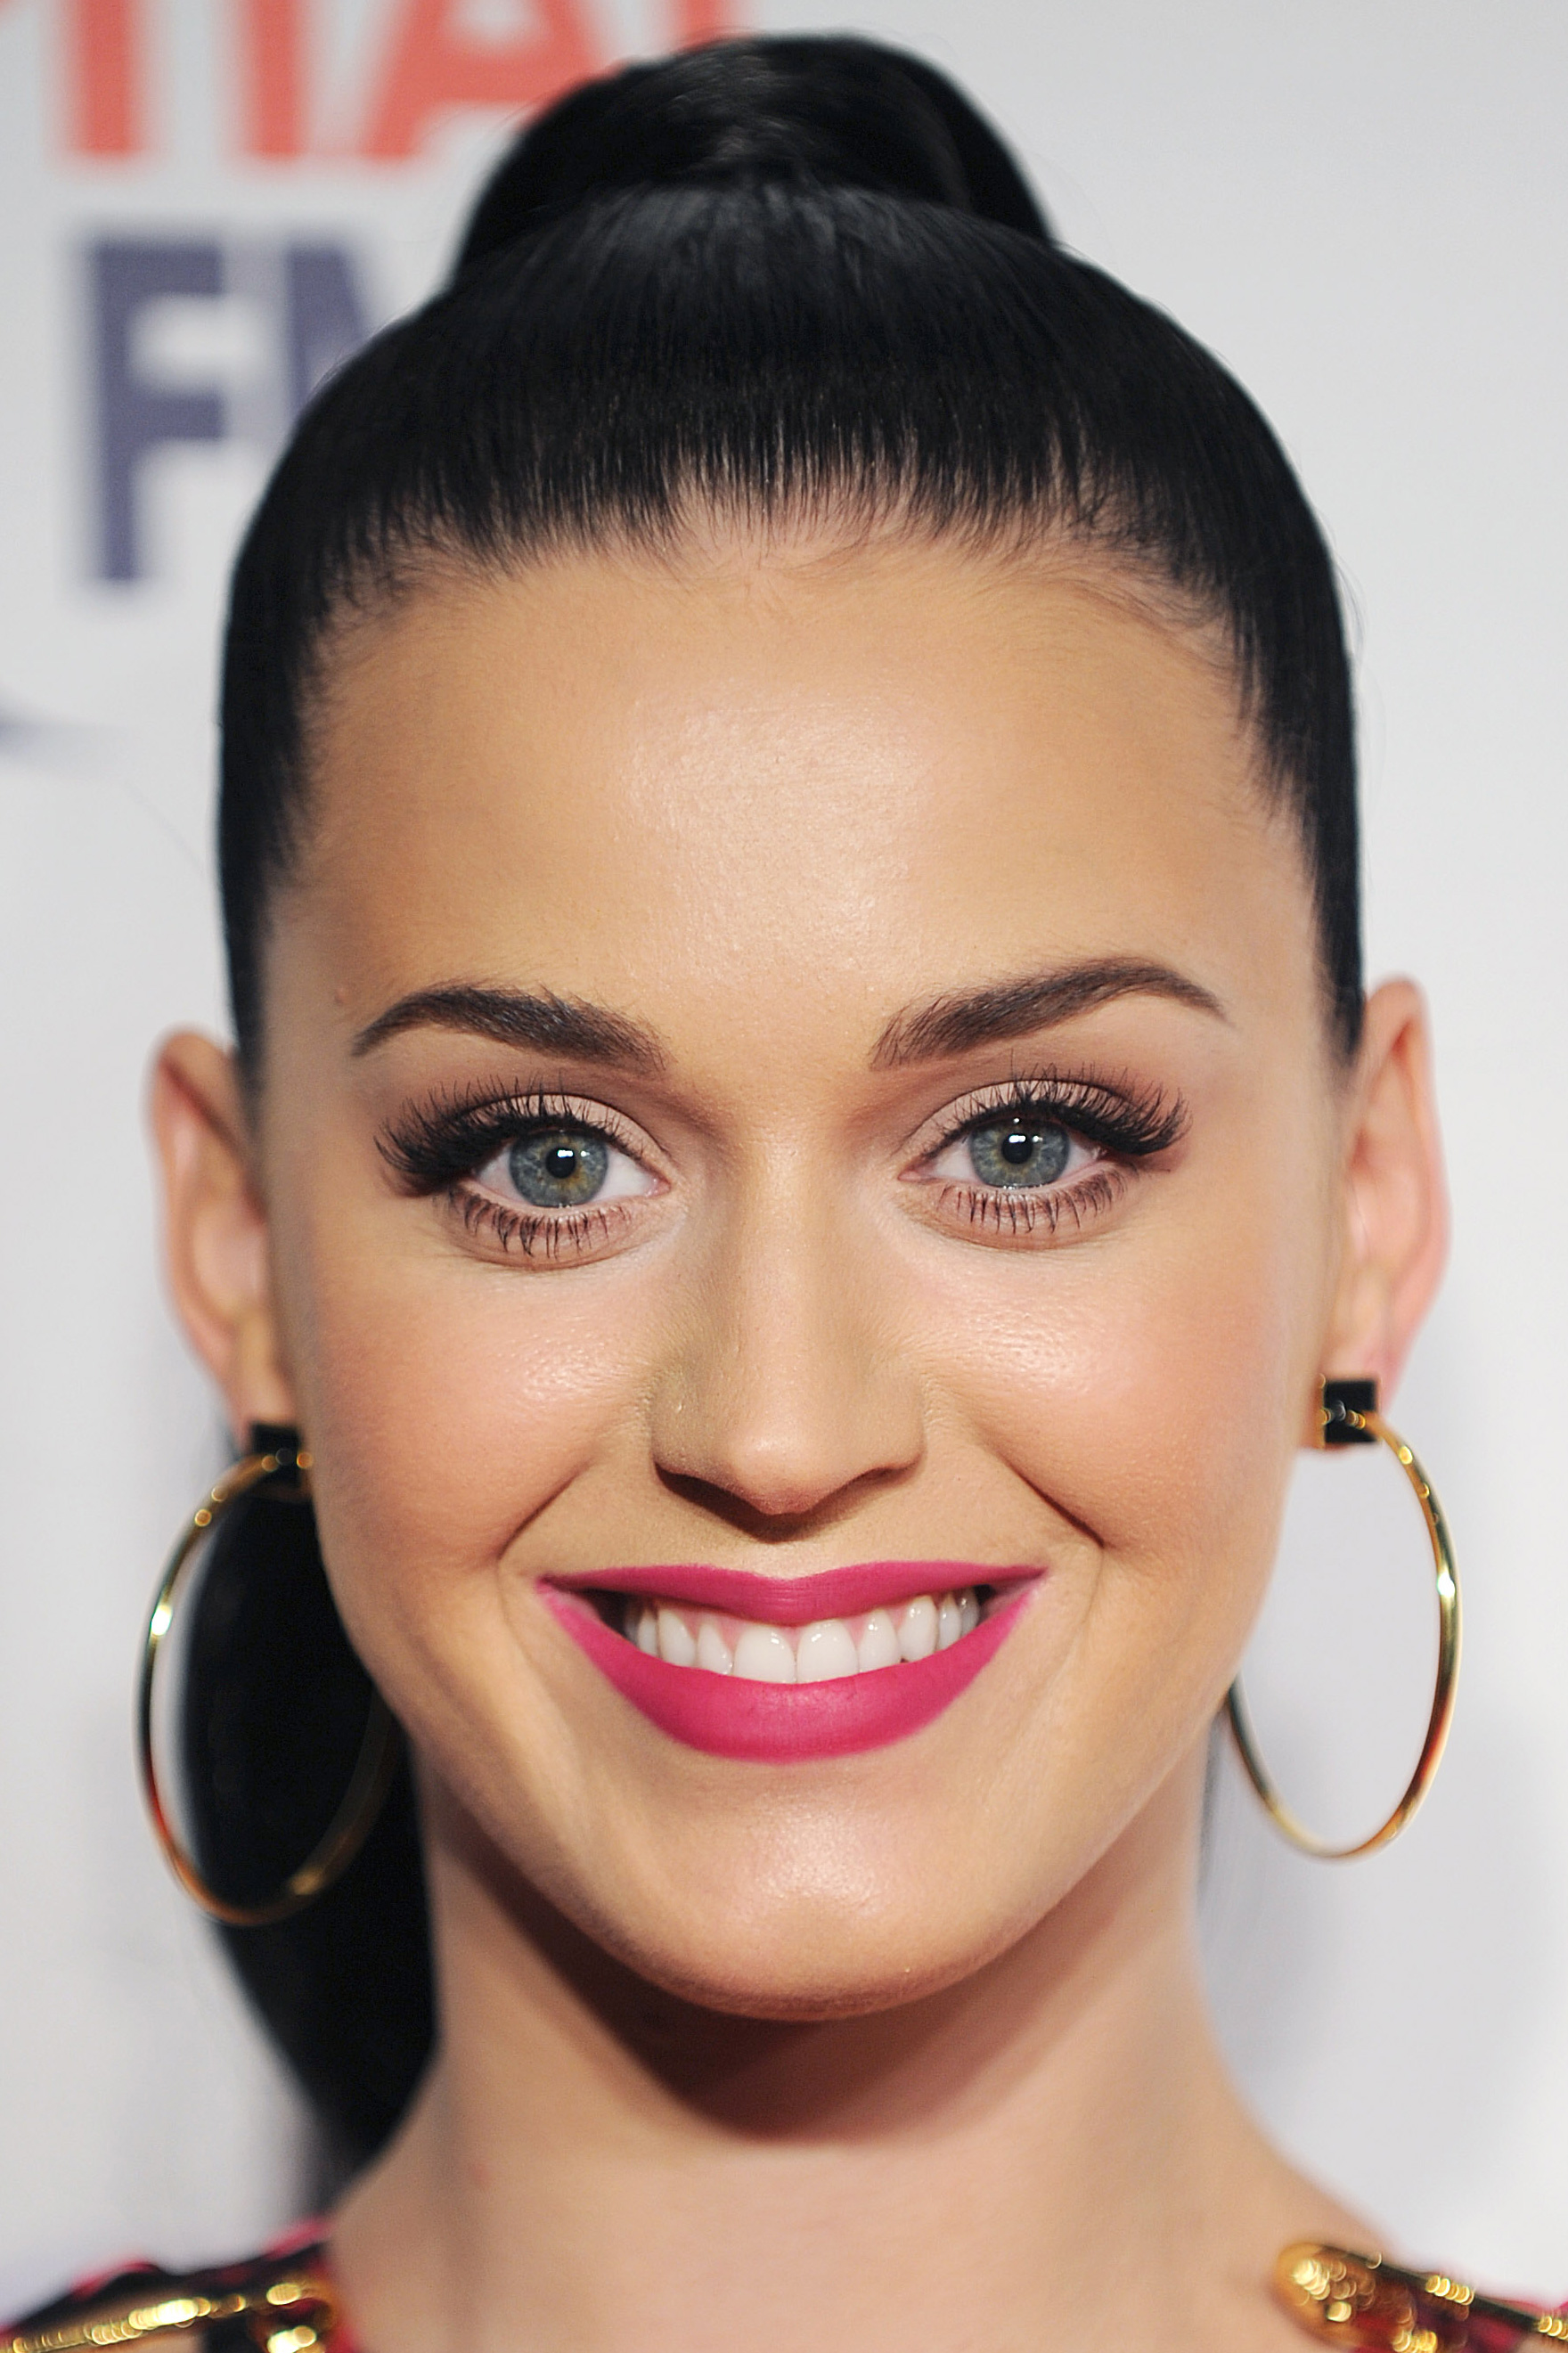 New Haircut For Women 2014 Find Hairstyle